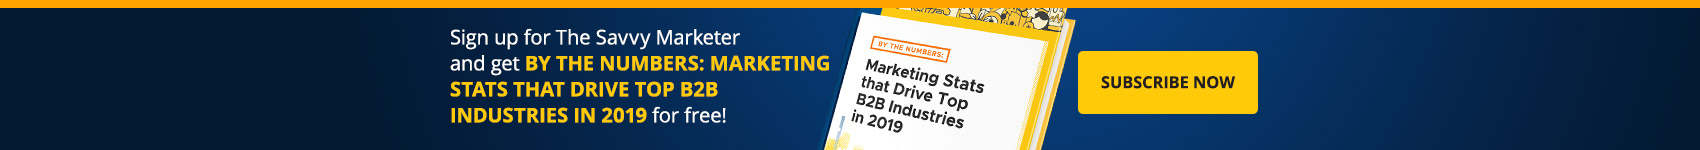 By-The-Numbers-Marketing-Stats-that-Drive-Top-B2B-Industries-in-2019-SLIDER